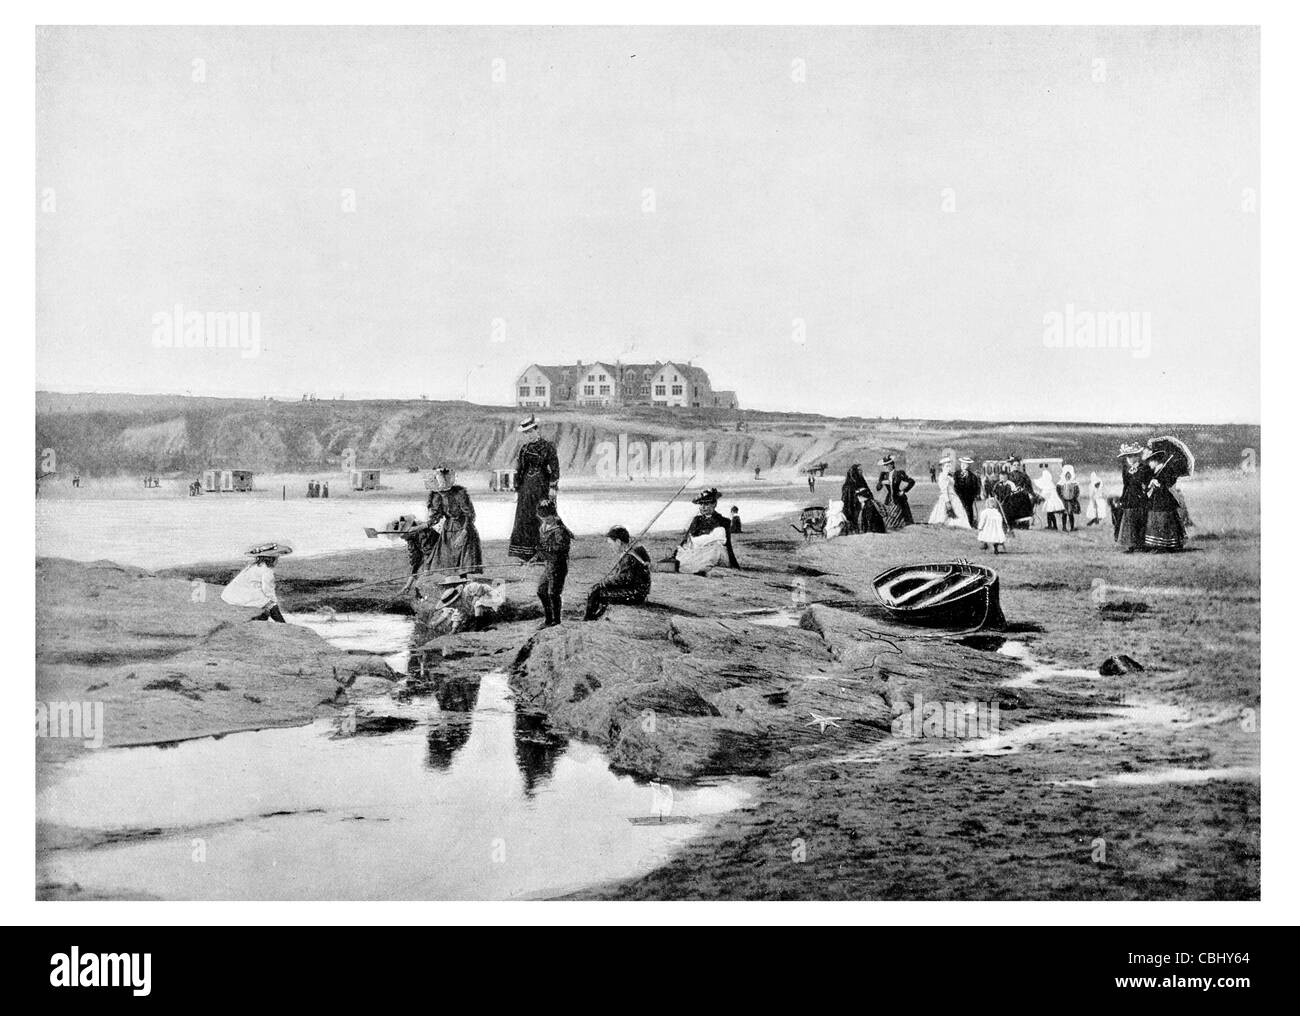 Bundoran County Donegal Ireland seaside resort beach hot summer day bathing costume - Stock Image